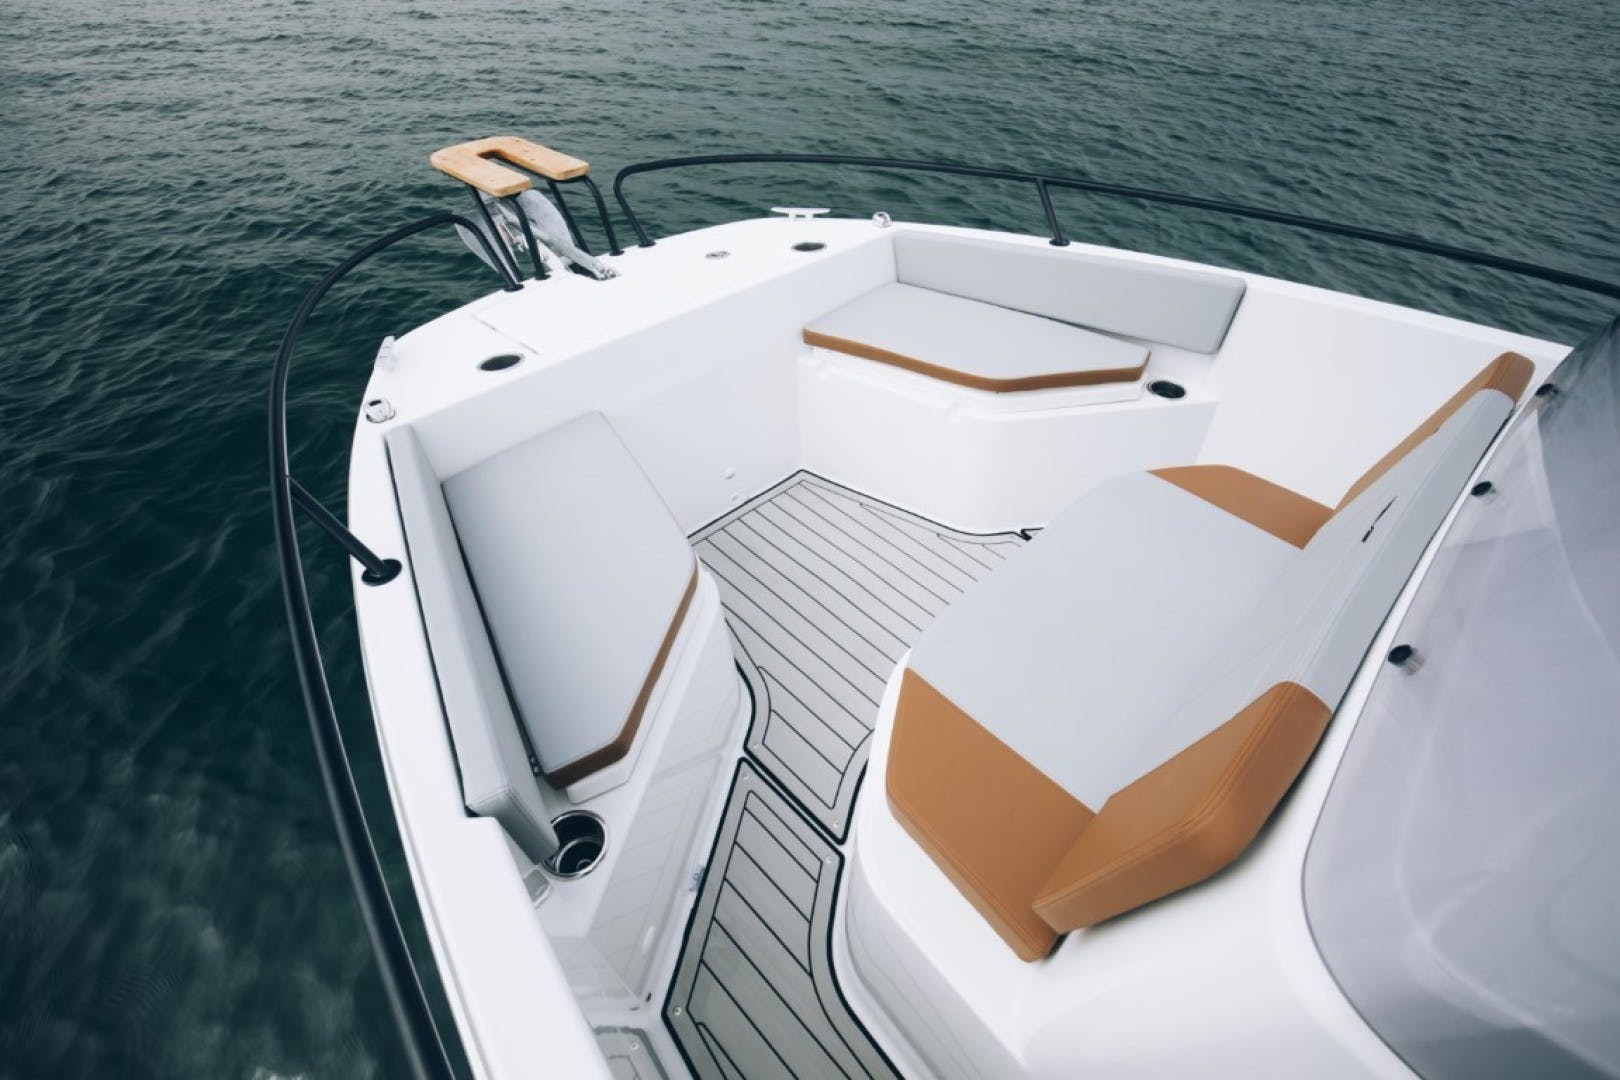 2021 Beneteau 21' Flyer 7 Spacedeck  | Picture 6 of 13